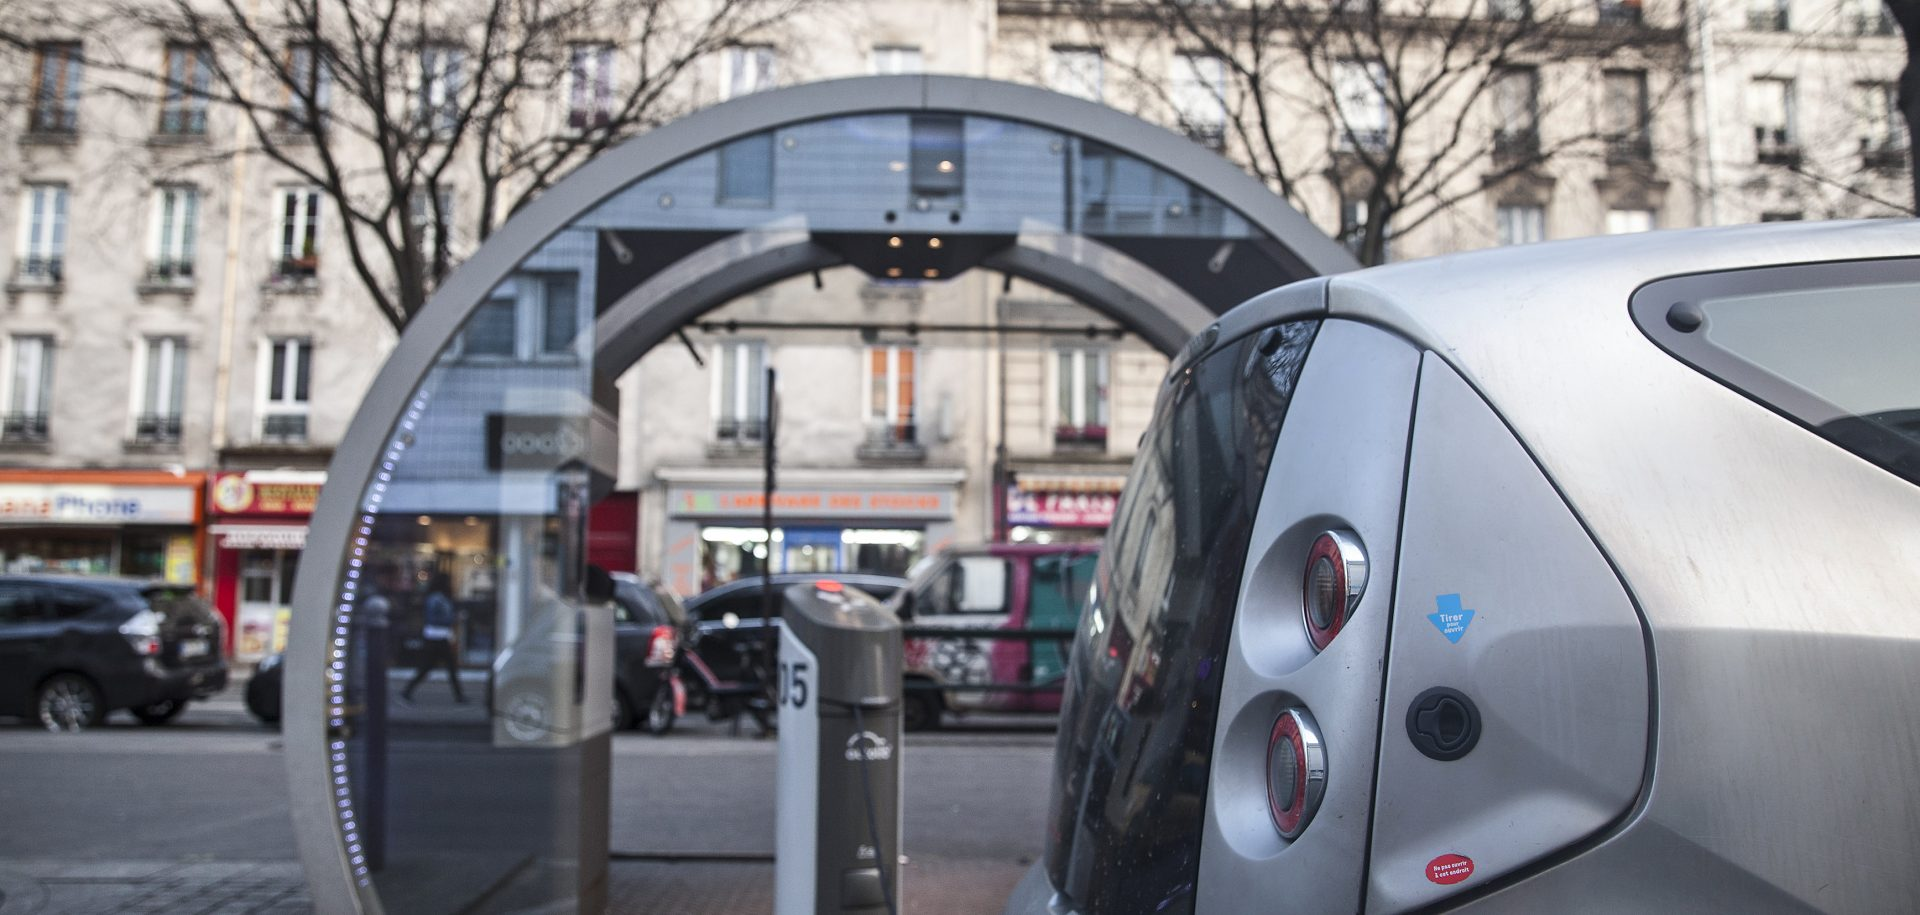 Bicycle And Electric Car-Sharing Schemes Ahead Of Paris Mayoral Election